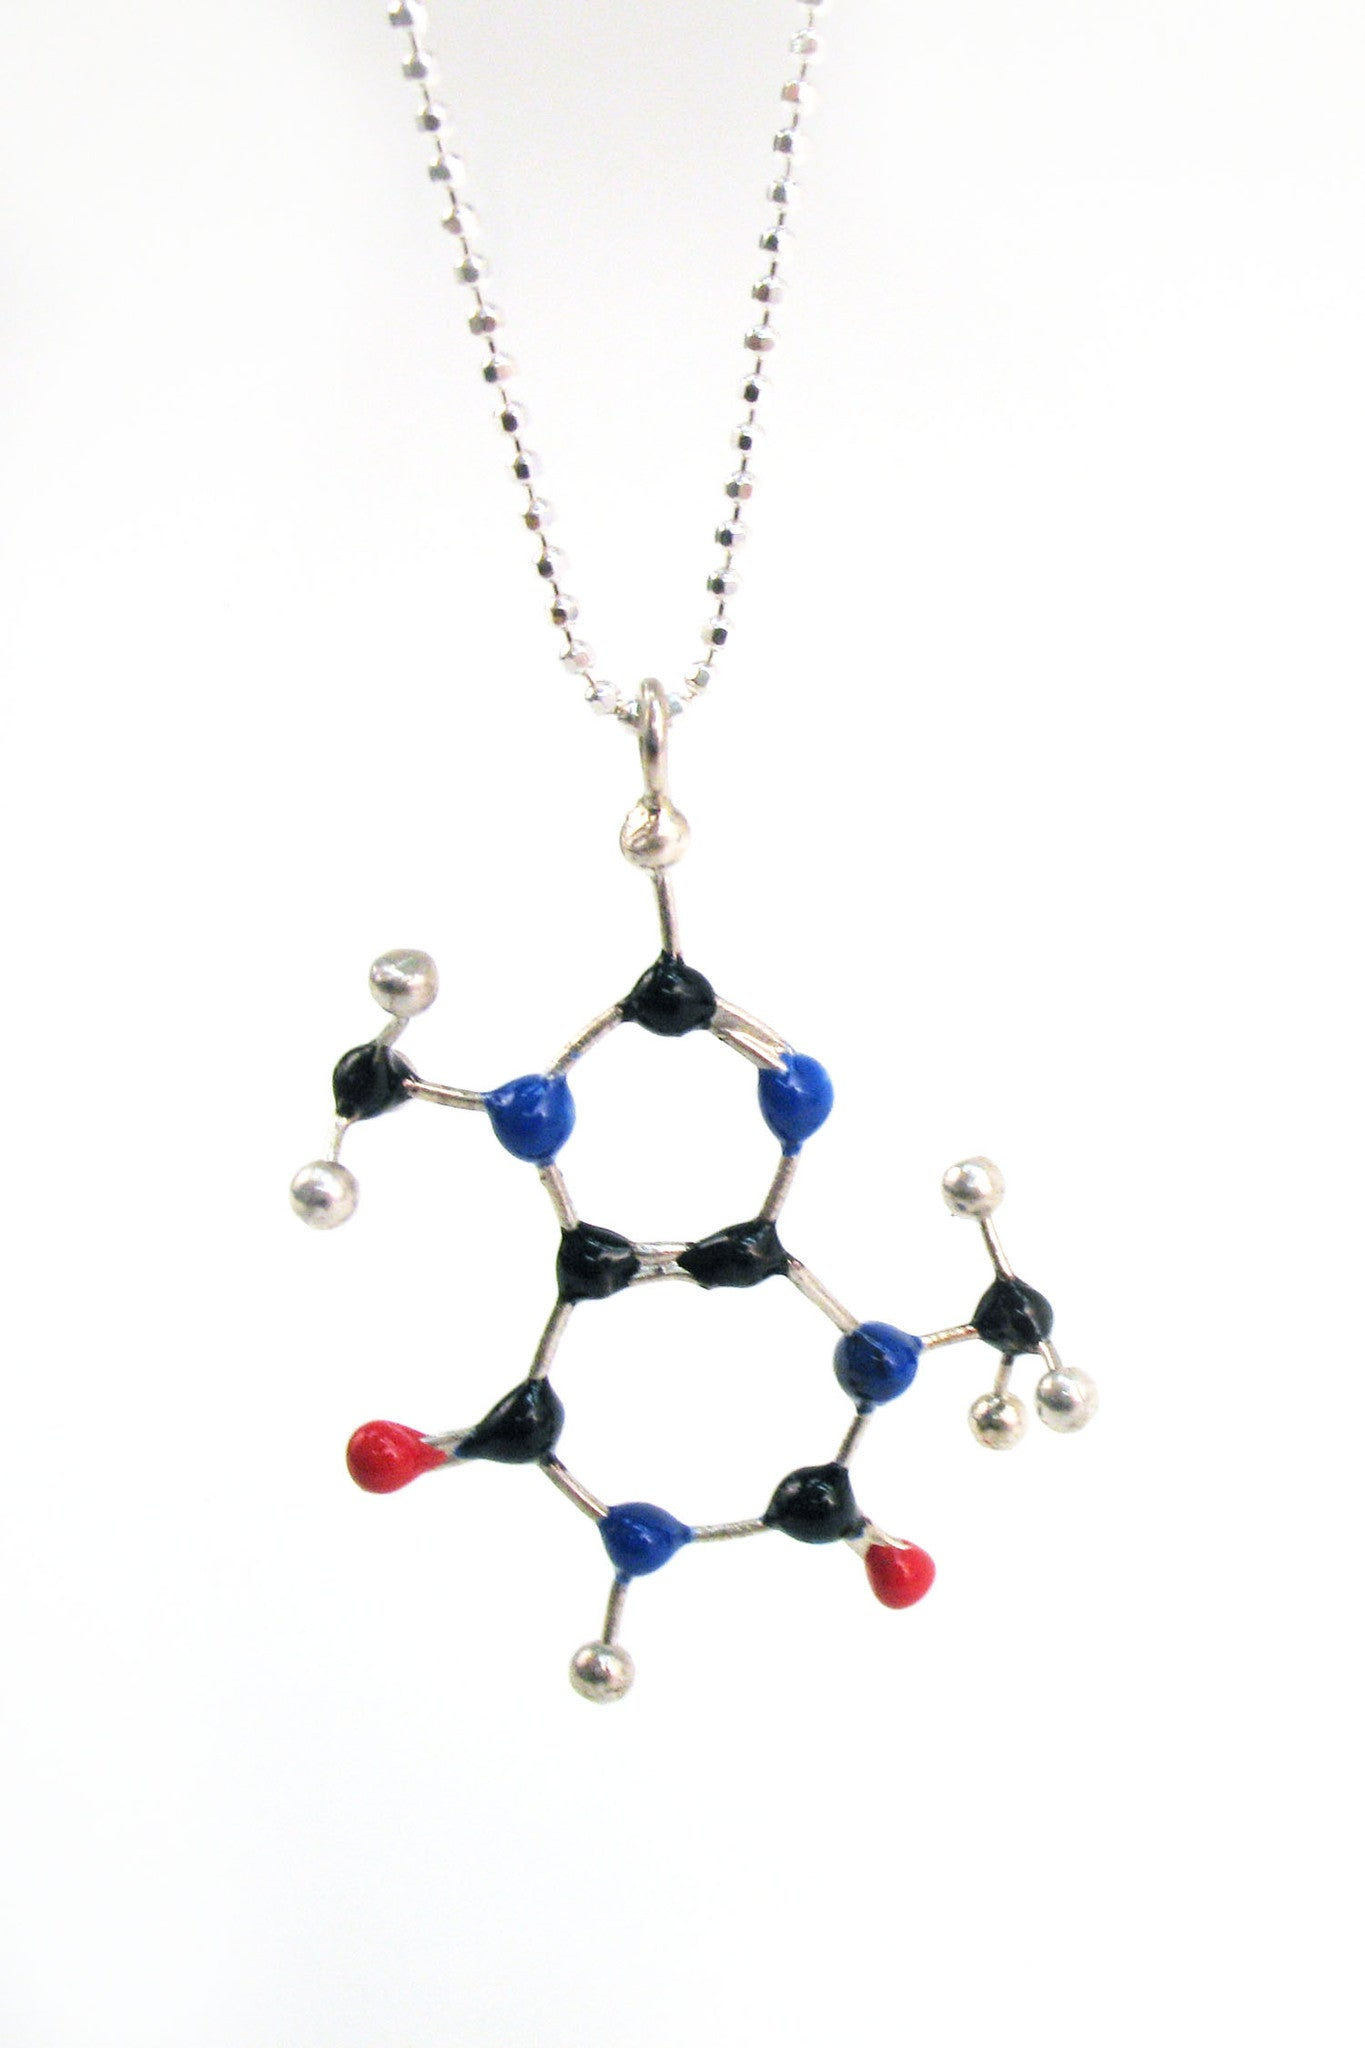 Hey Chocoholics! Wear your vice with this slash pile Chocolate Molecule necklace